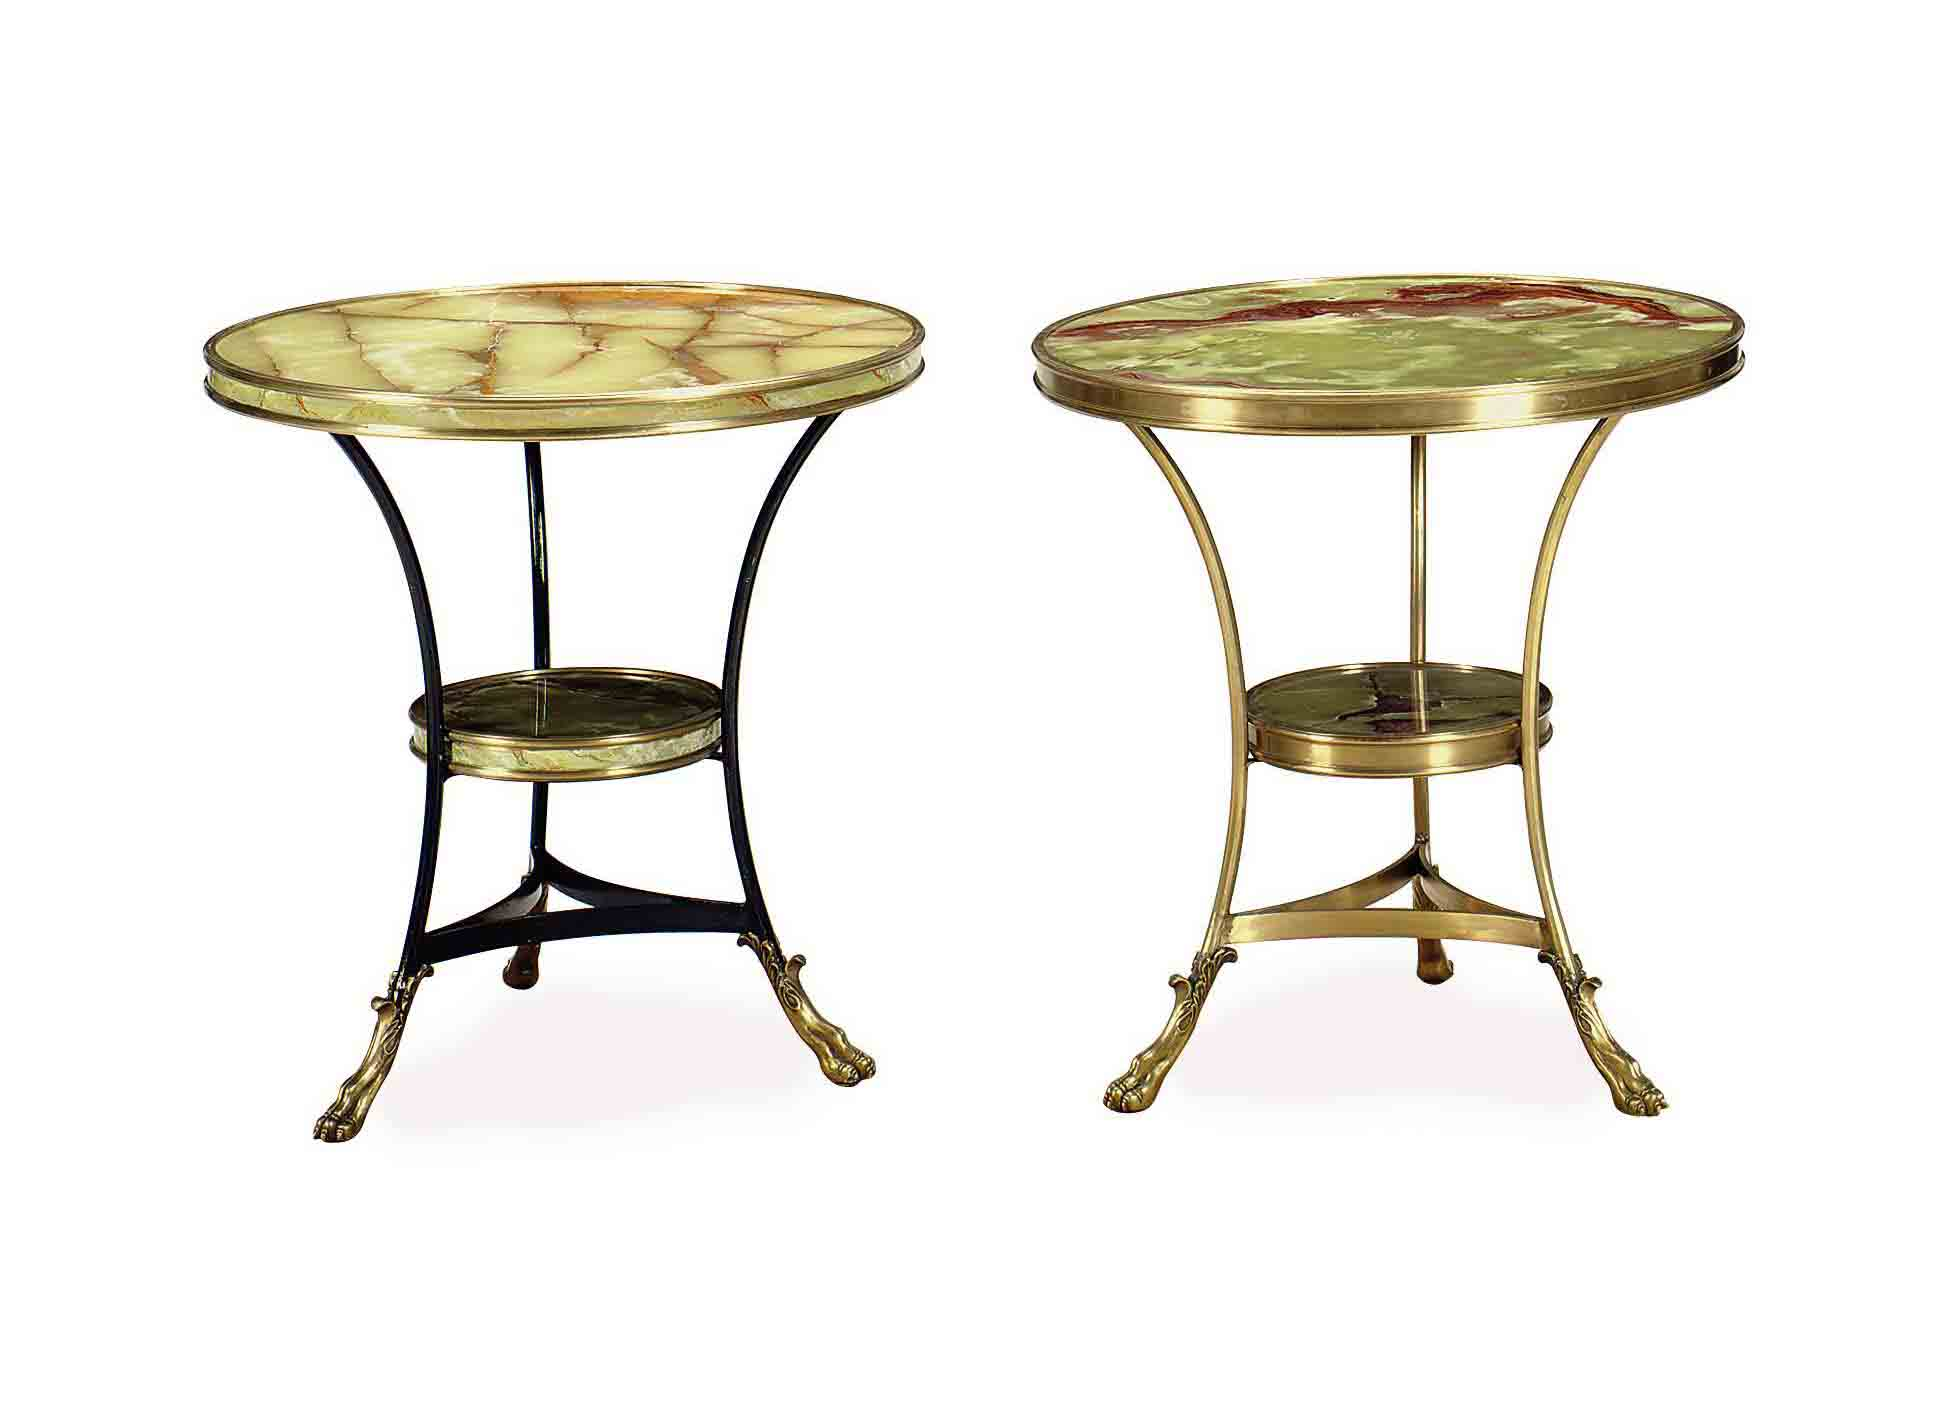 A PAIR OF GILT, PATINATED-META